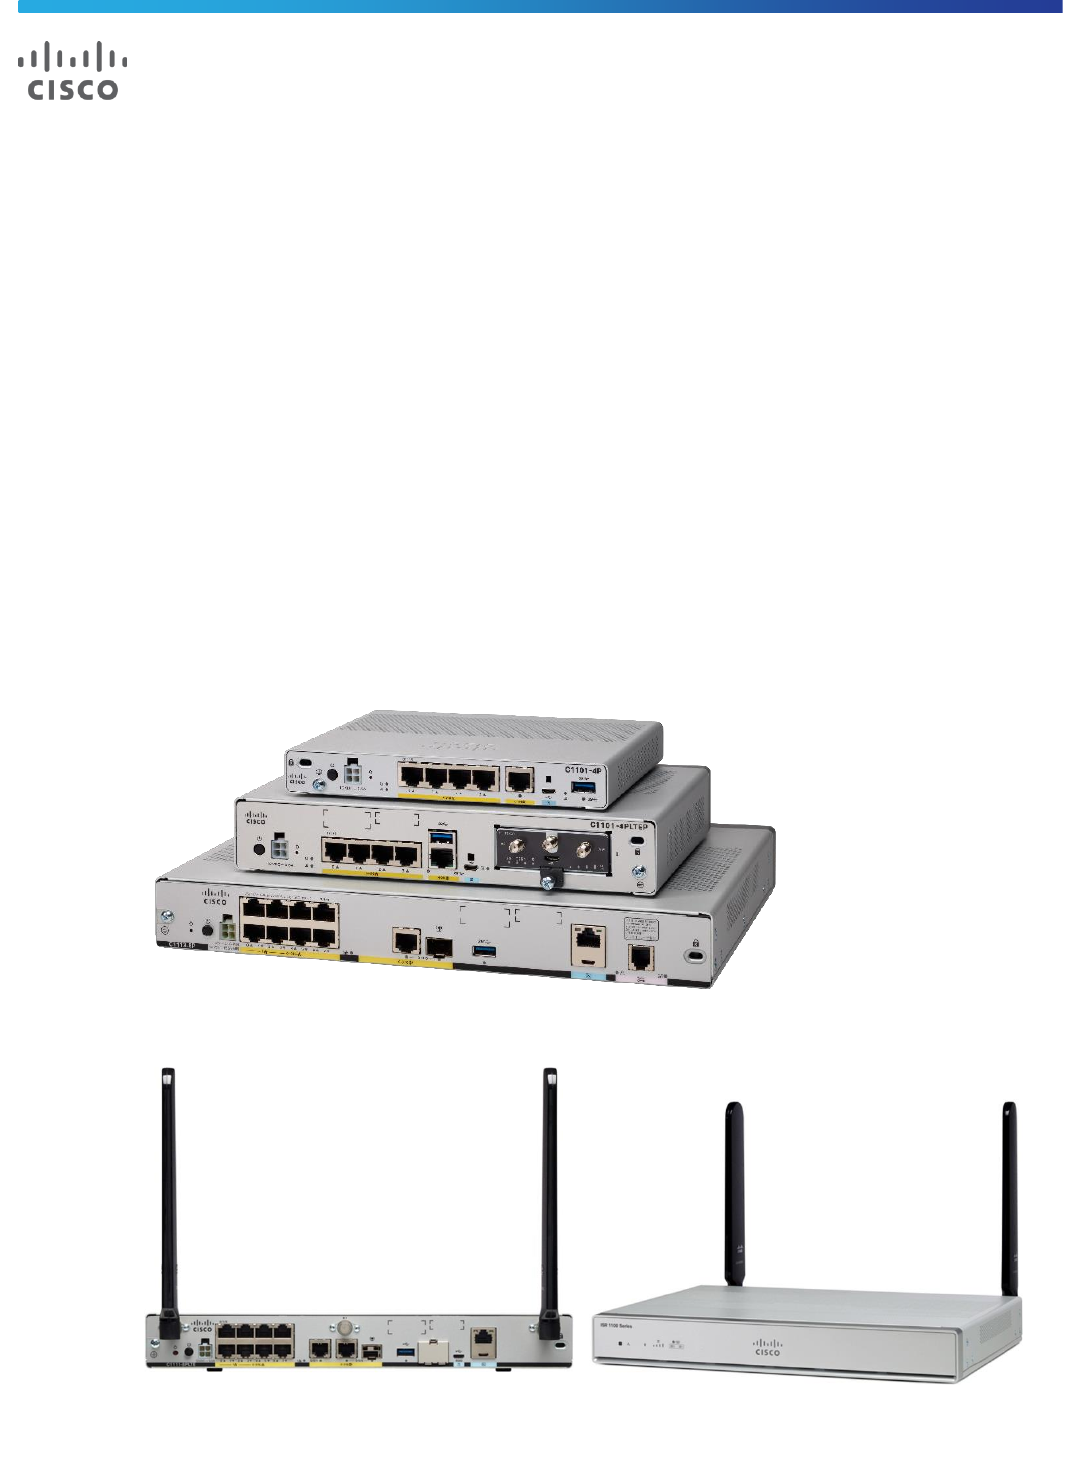 Cisco 1100 Series Integrated Services Routers Data Sheet